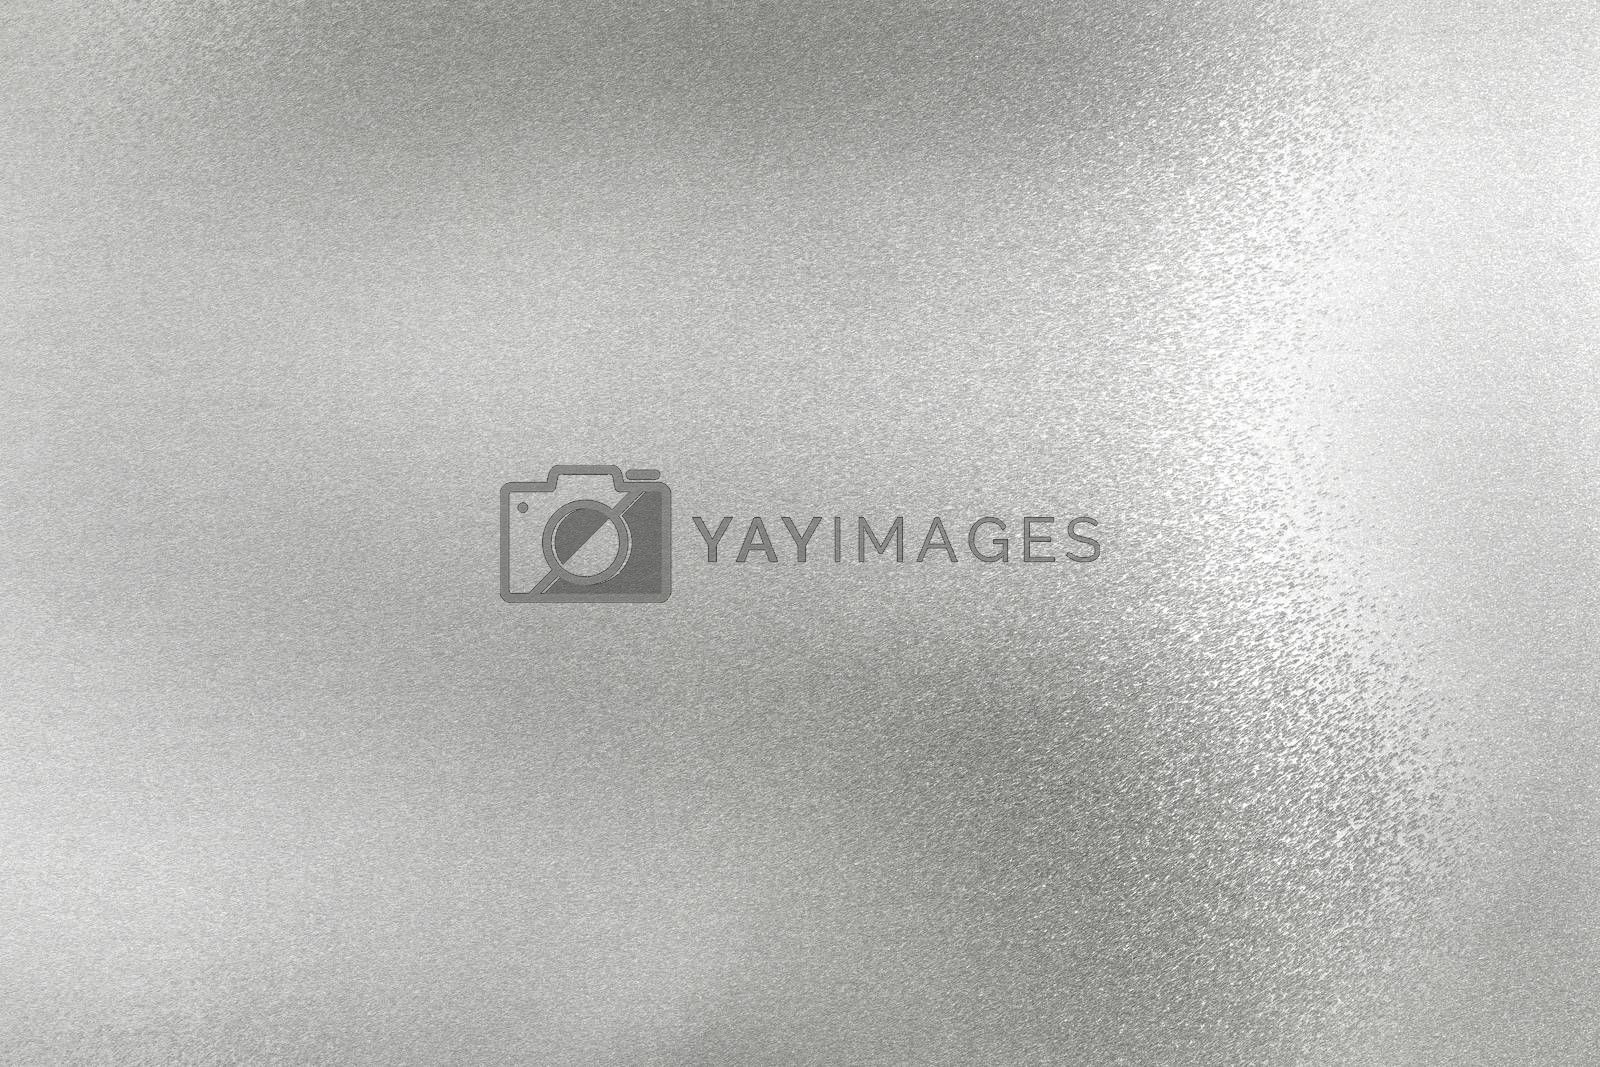 Glowing silver foil metal wall surface, abstract texture background